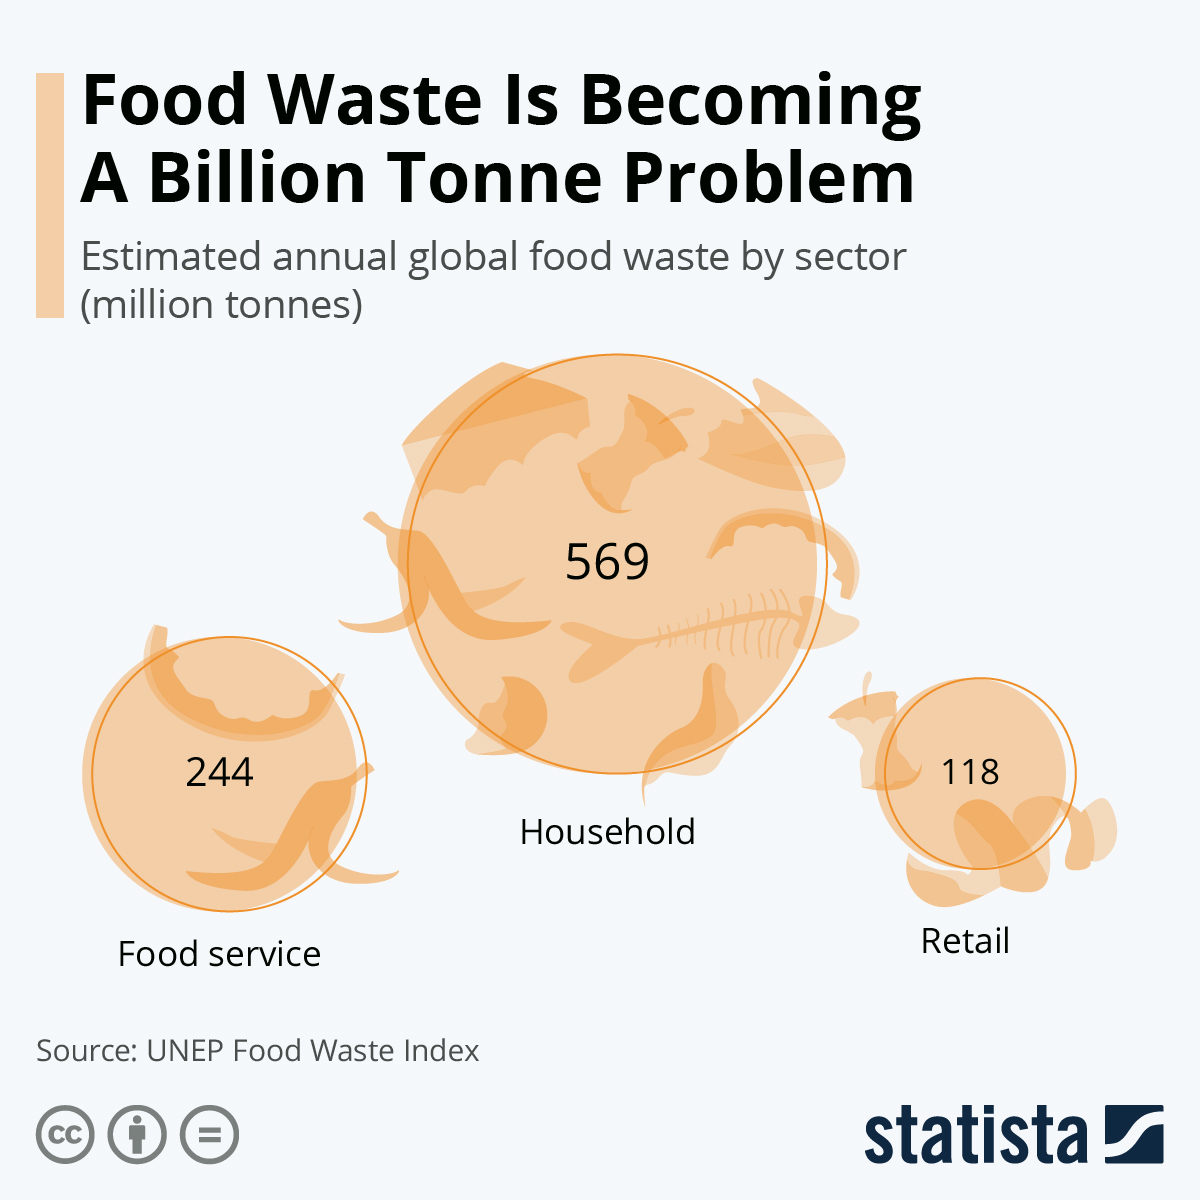 Food Waste Is Becoming A Billion Tonne Problem